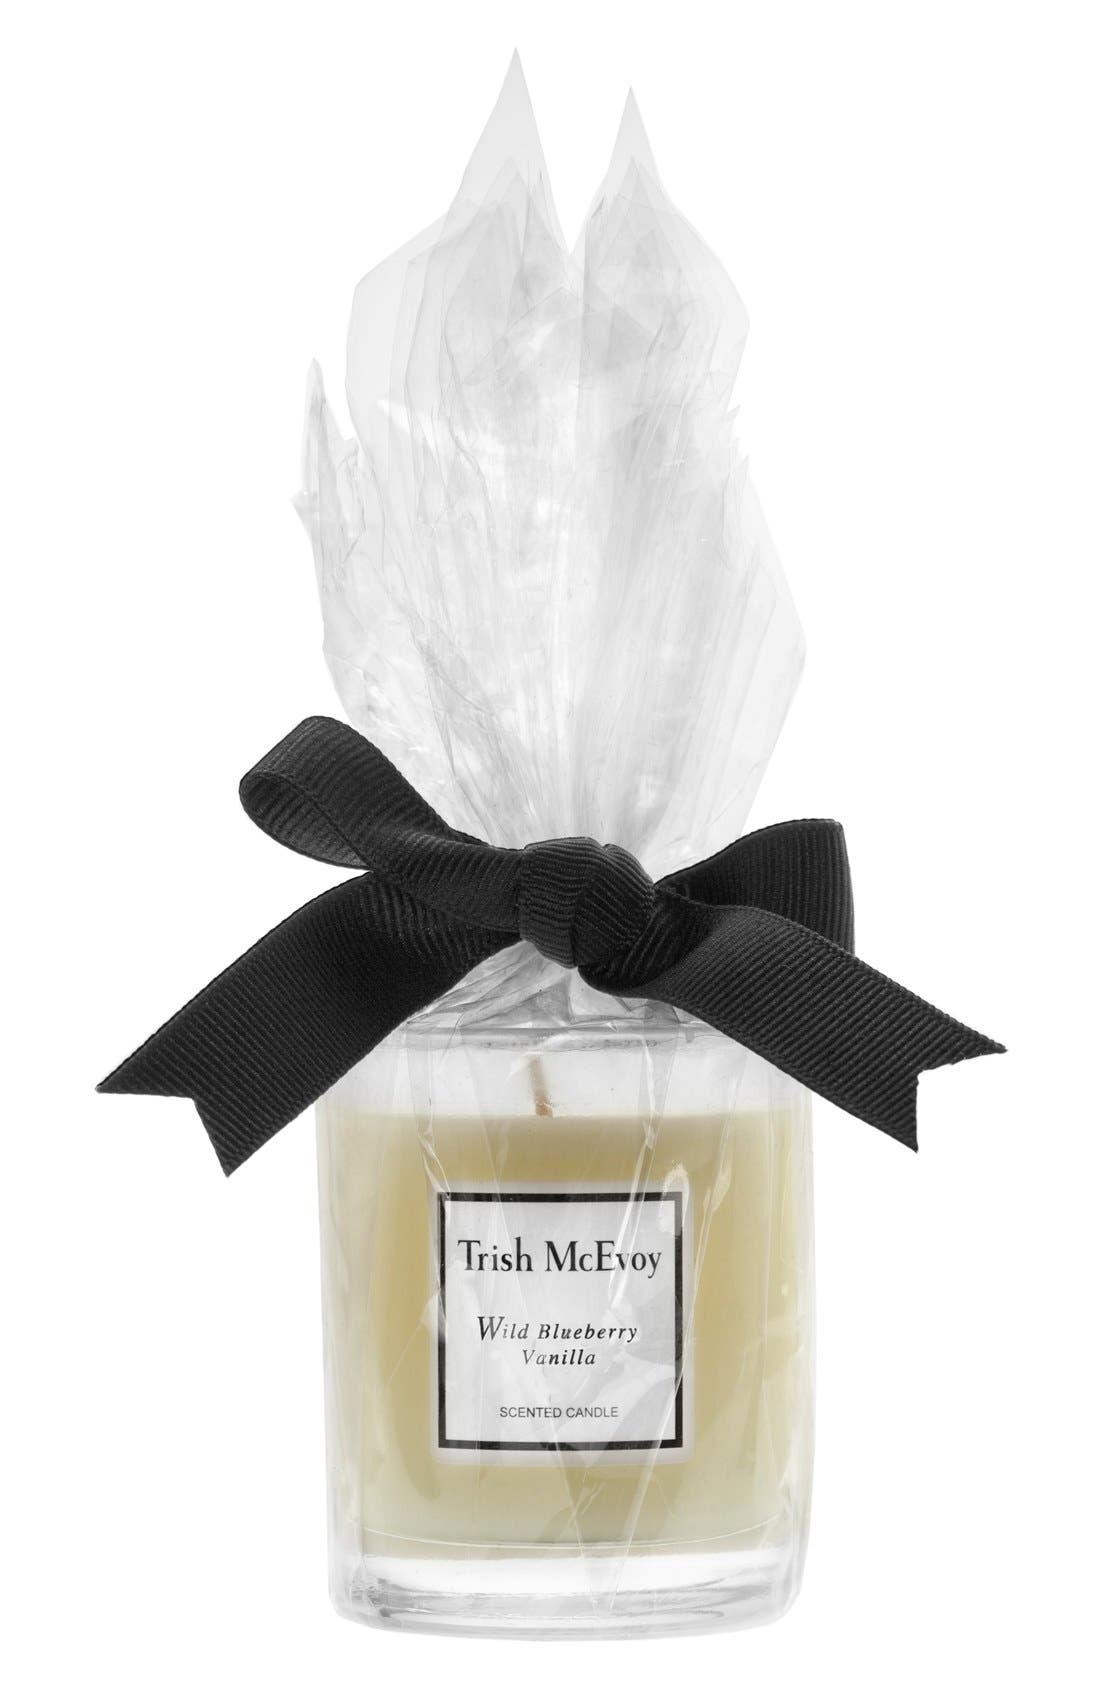 Trish McEvoy Wild Blueberry Vanilla Votive Candle